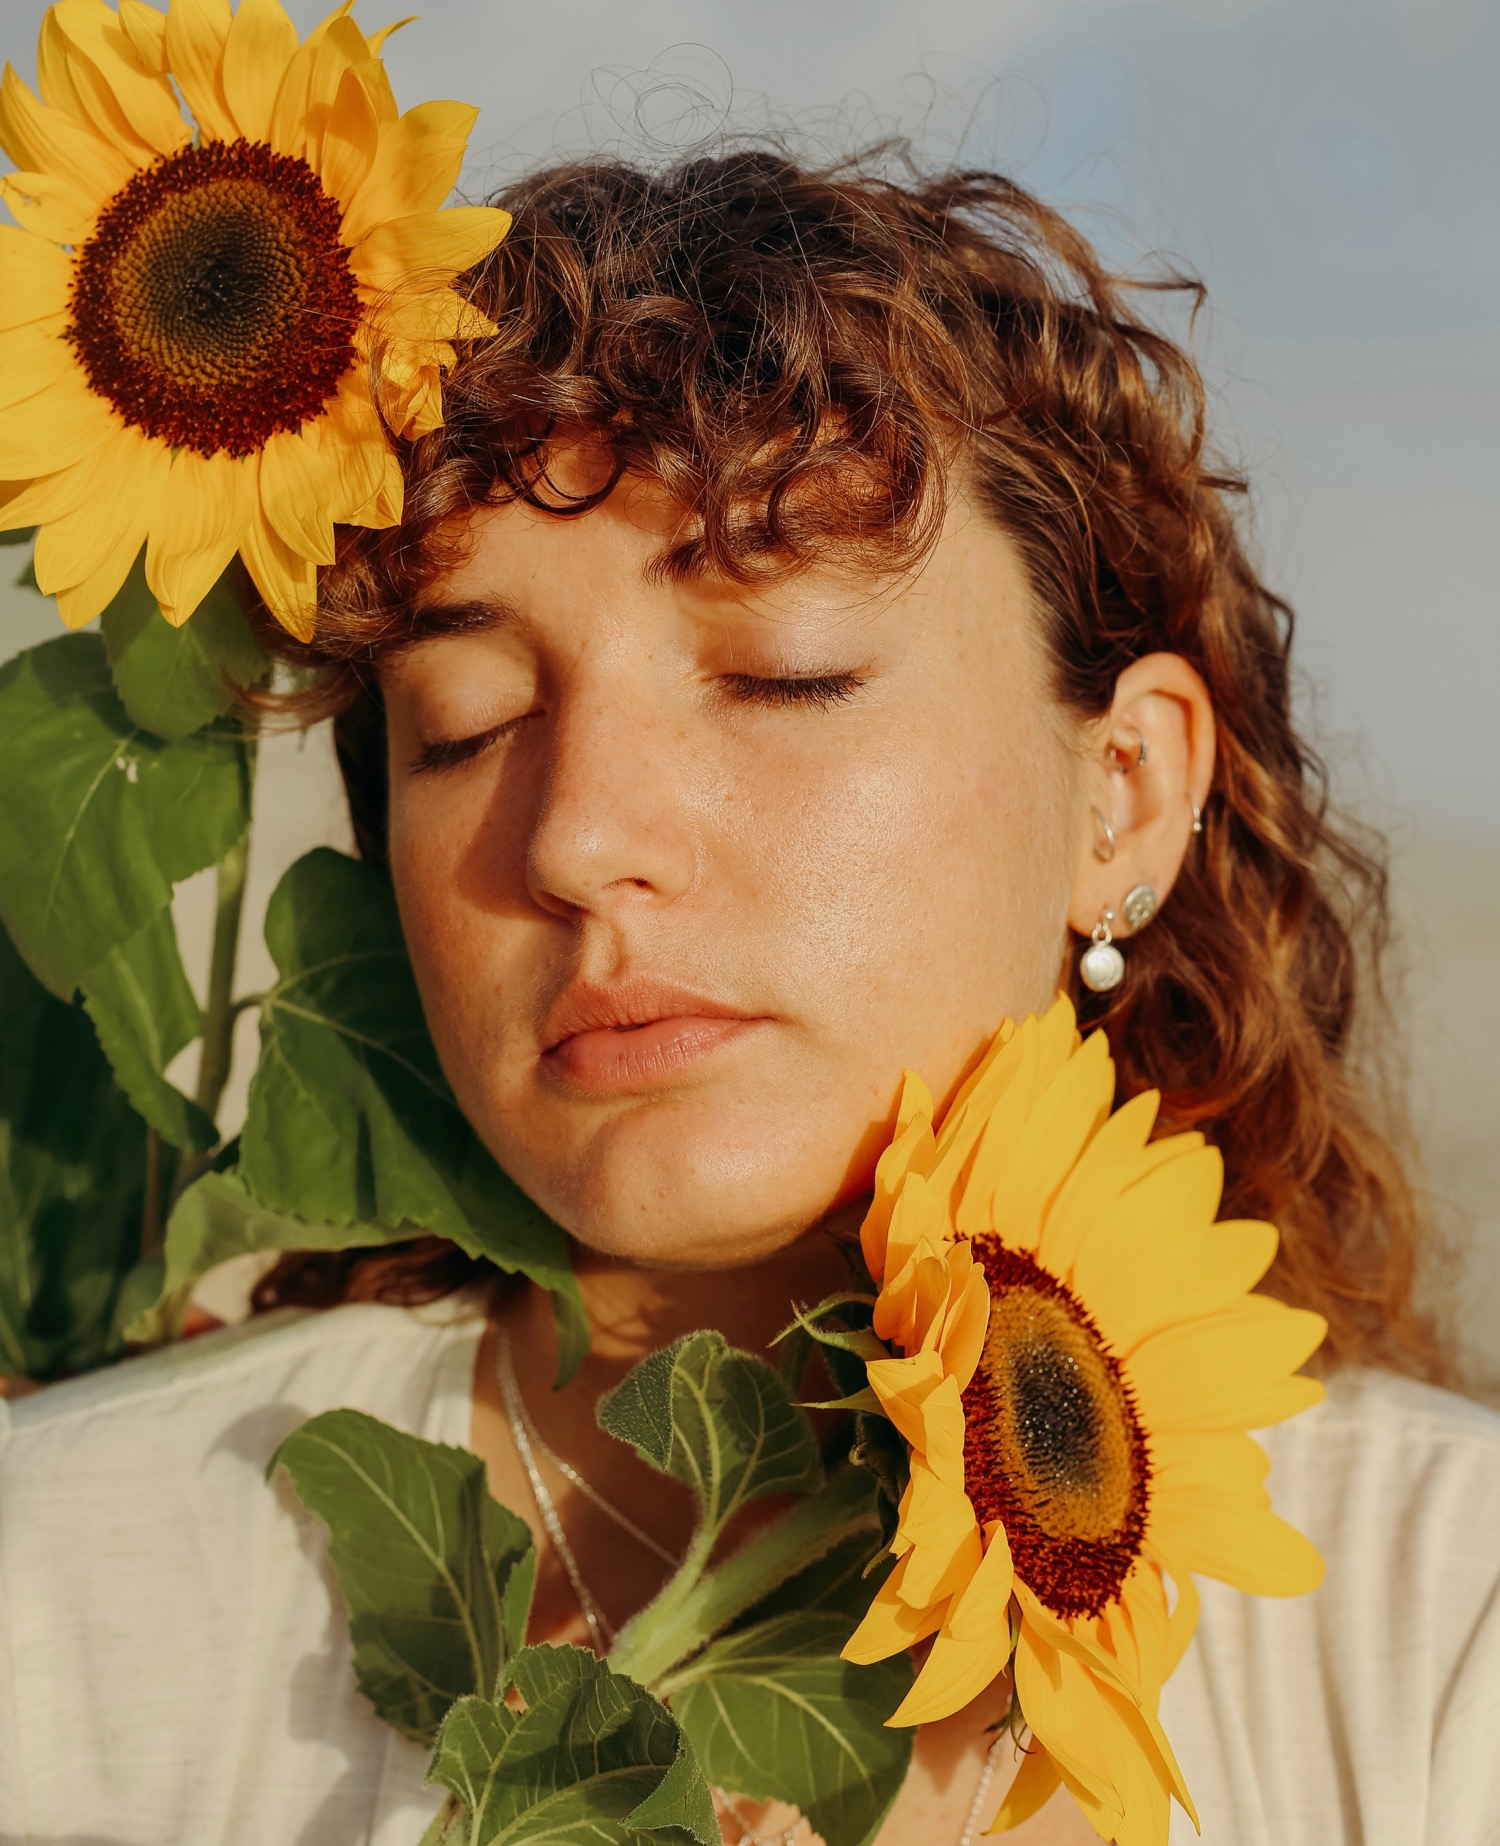 sunflowers-two-in-the-sun.jpeg